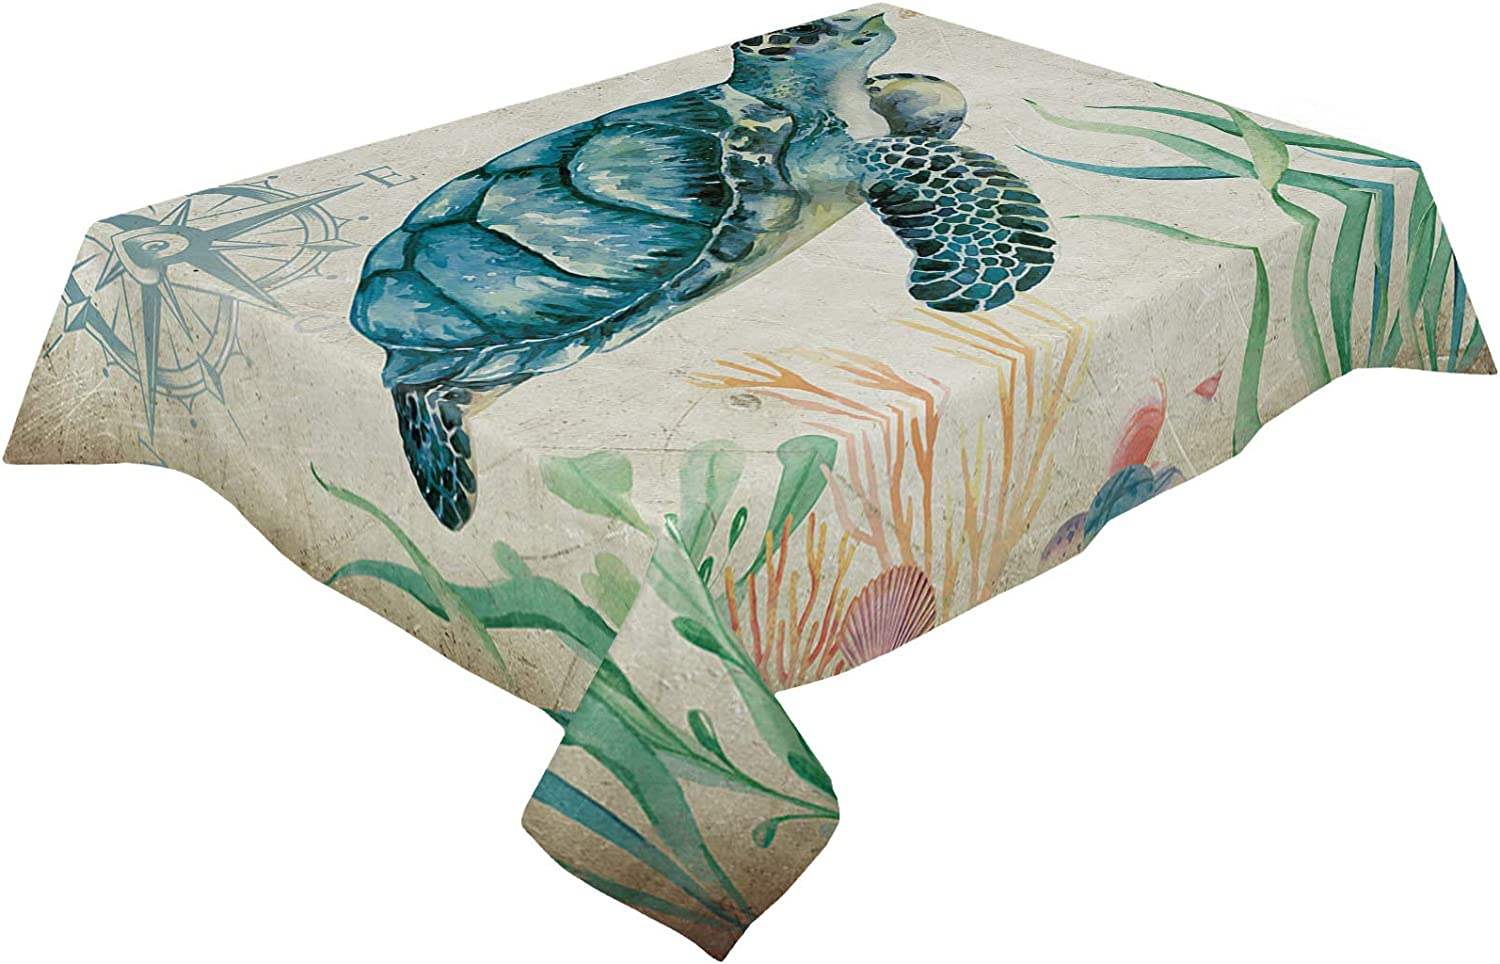 Table New sales Clothes for Rectangle Tables Turtle C Ocean Theme Our shop OFFers the best service 60x162in